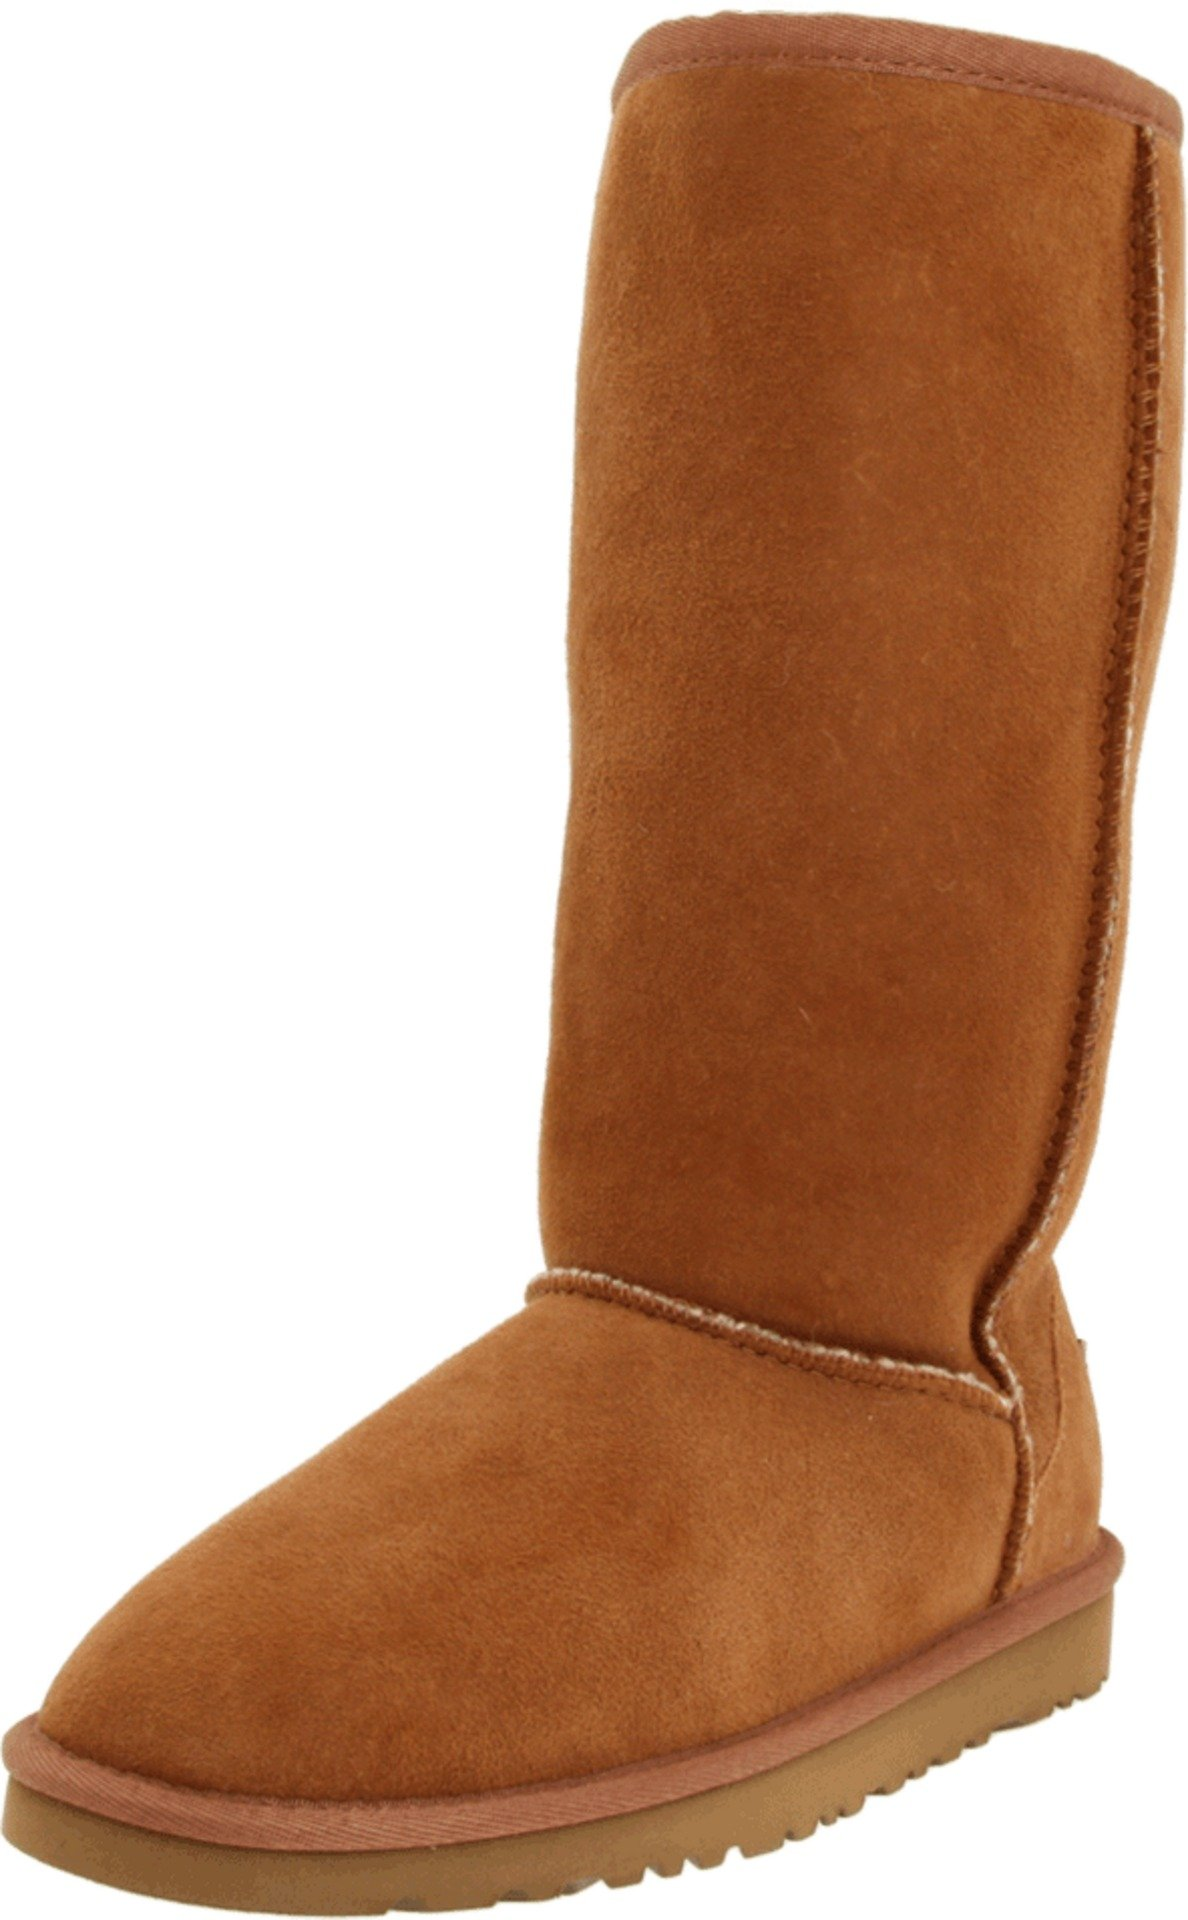 UGG Classic Tall (Youth) Chestnut,size US 5